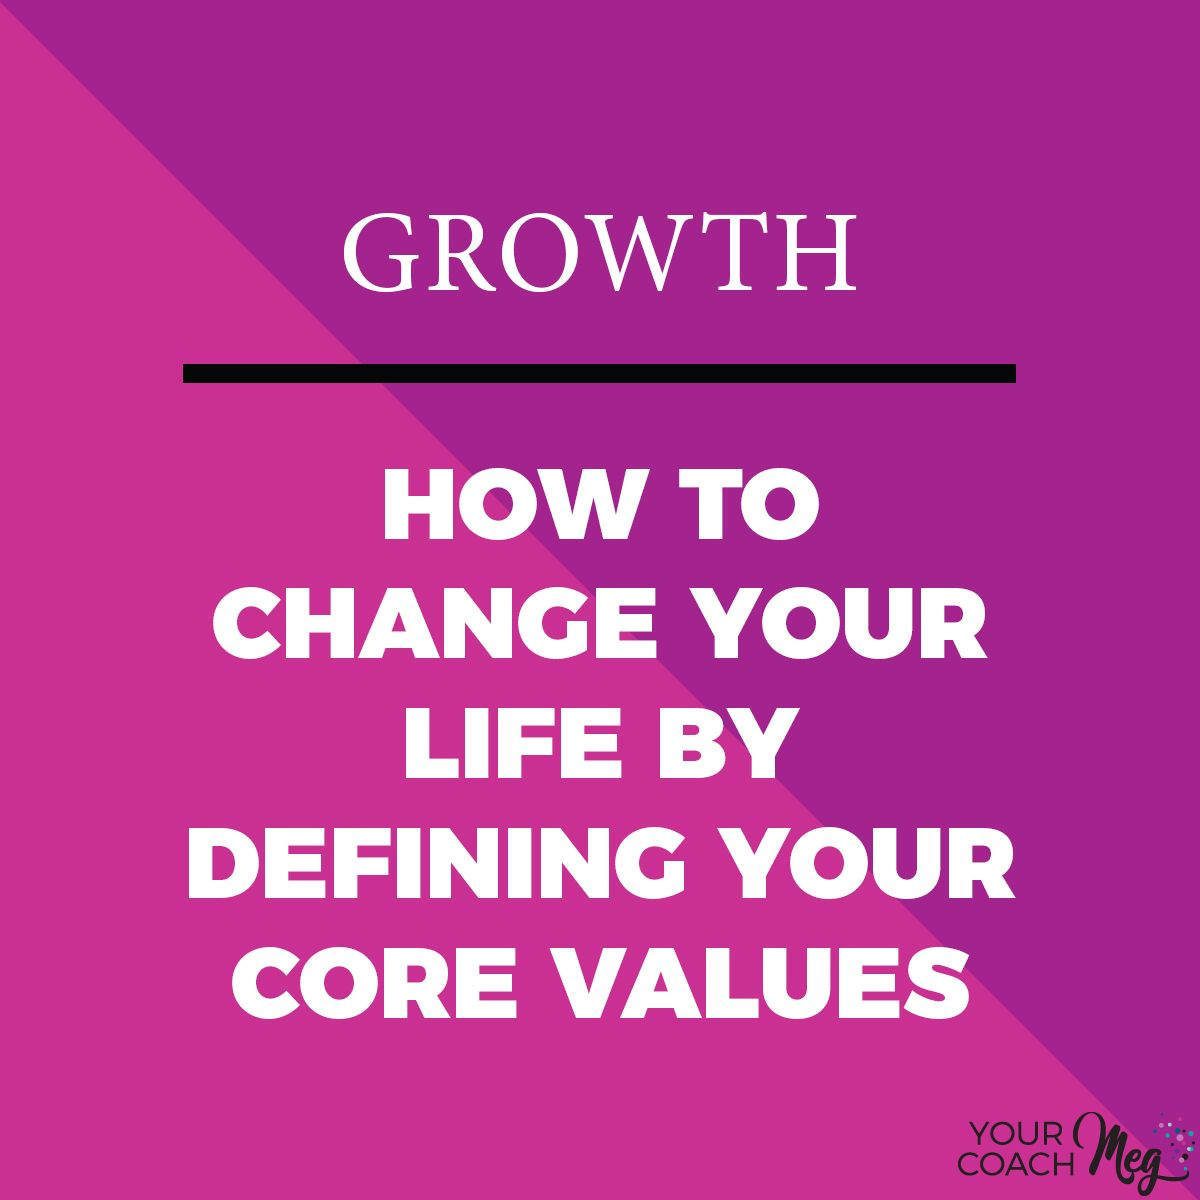 How To Change Your Life By Defining Your Core Values